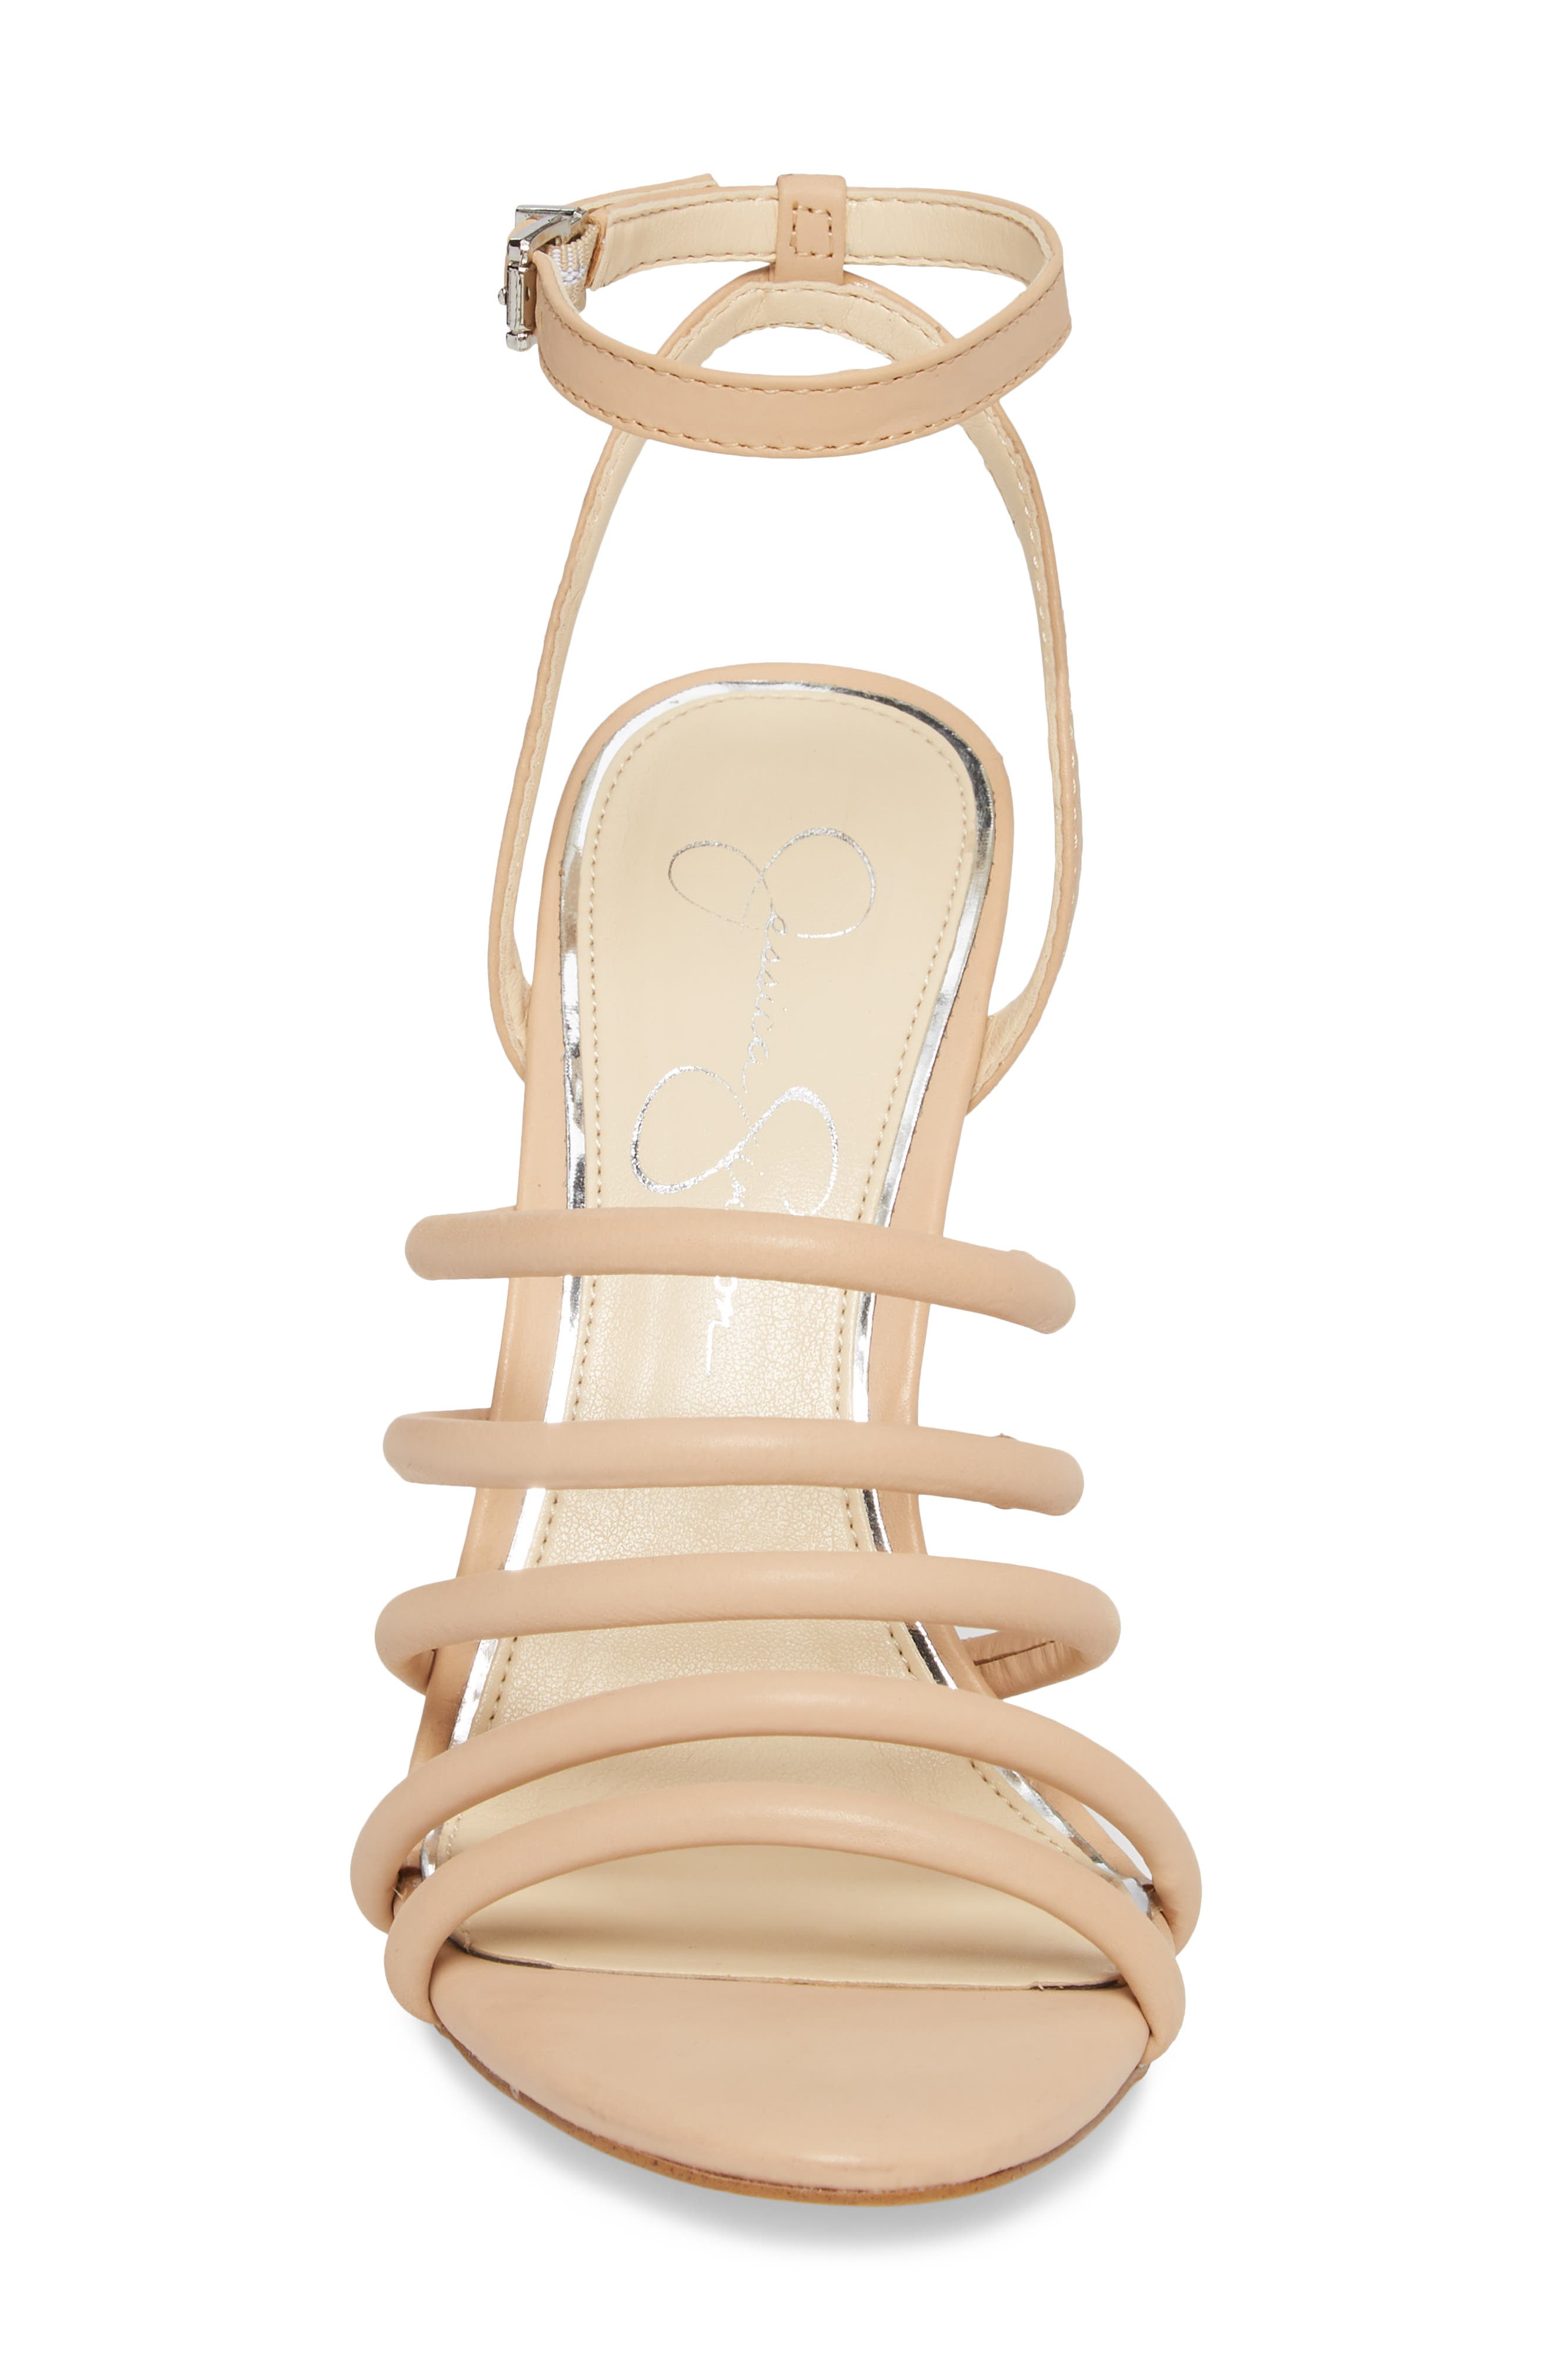 Joselle Strappy Sandal,                             Alternate thumbnail 12, color,